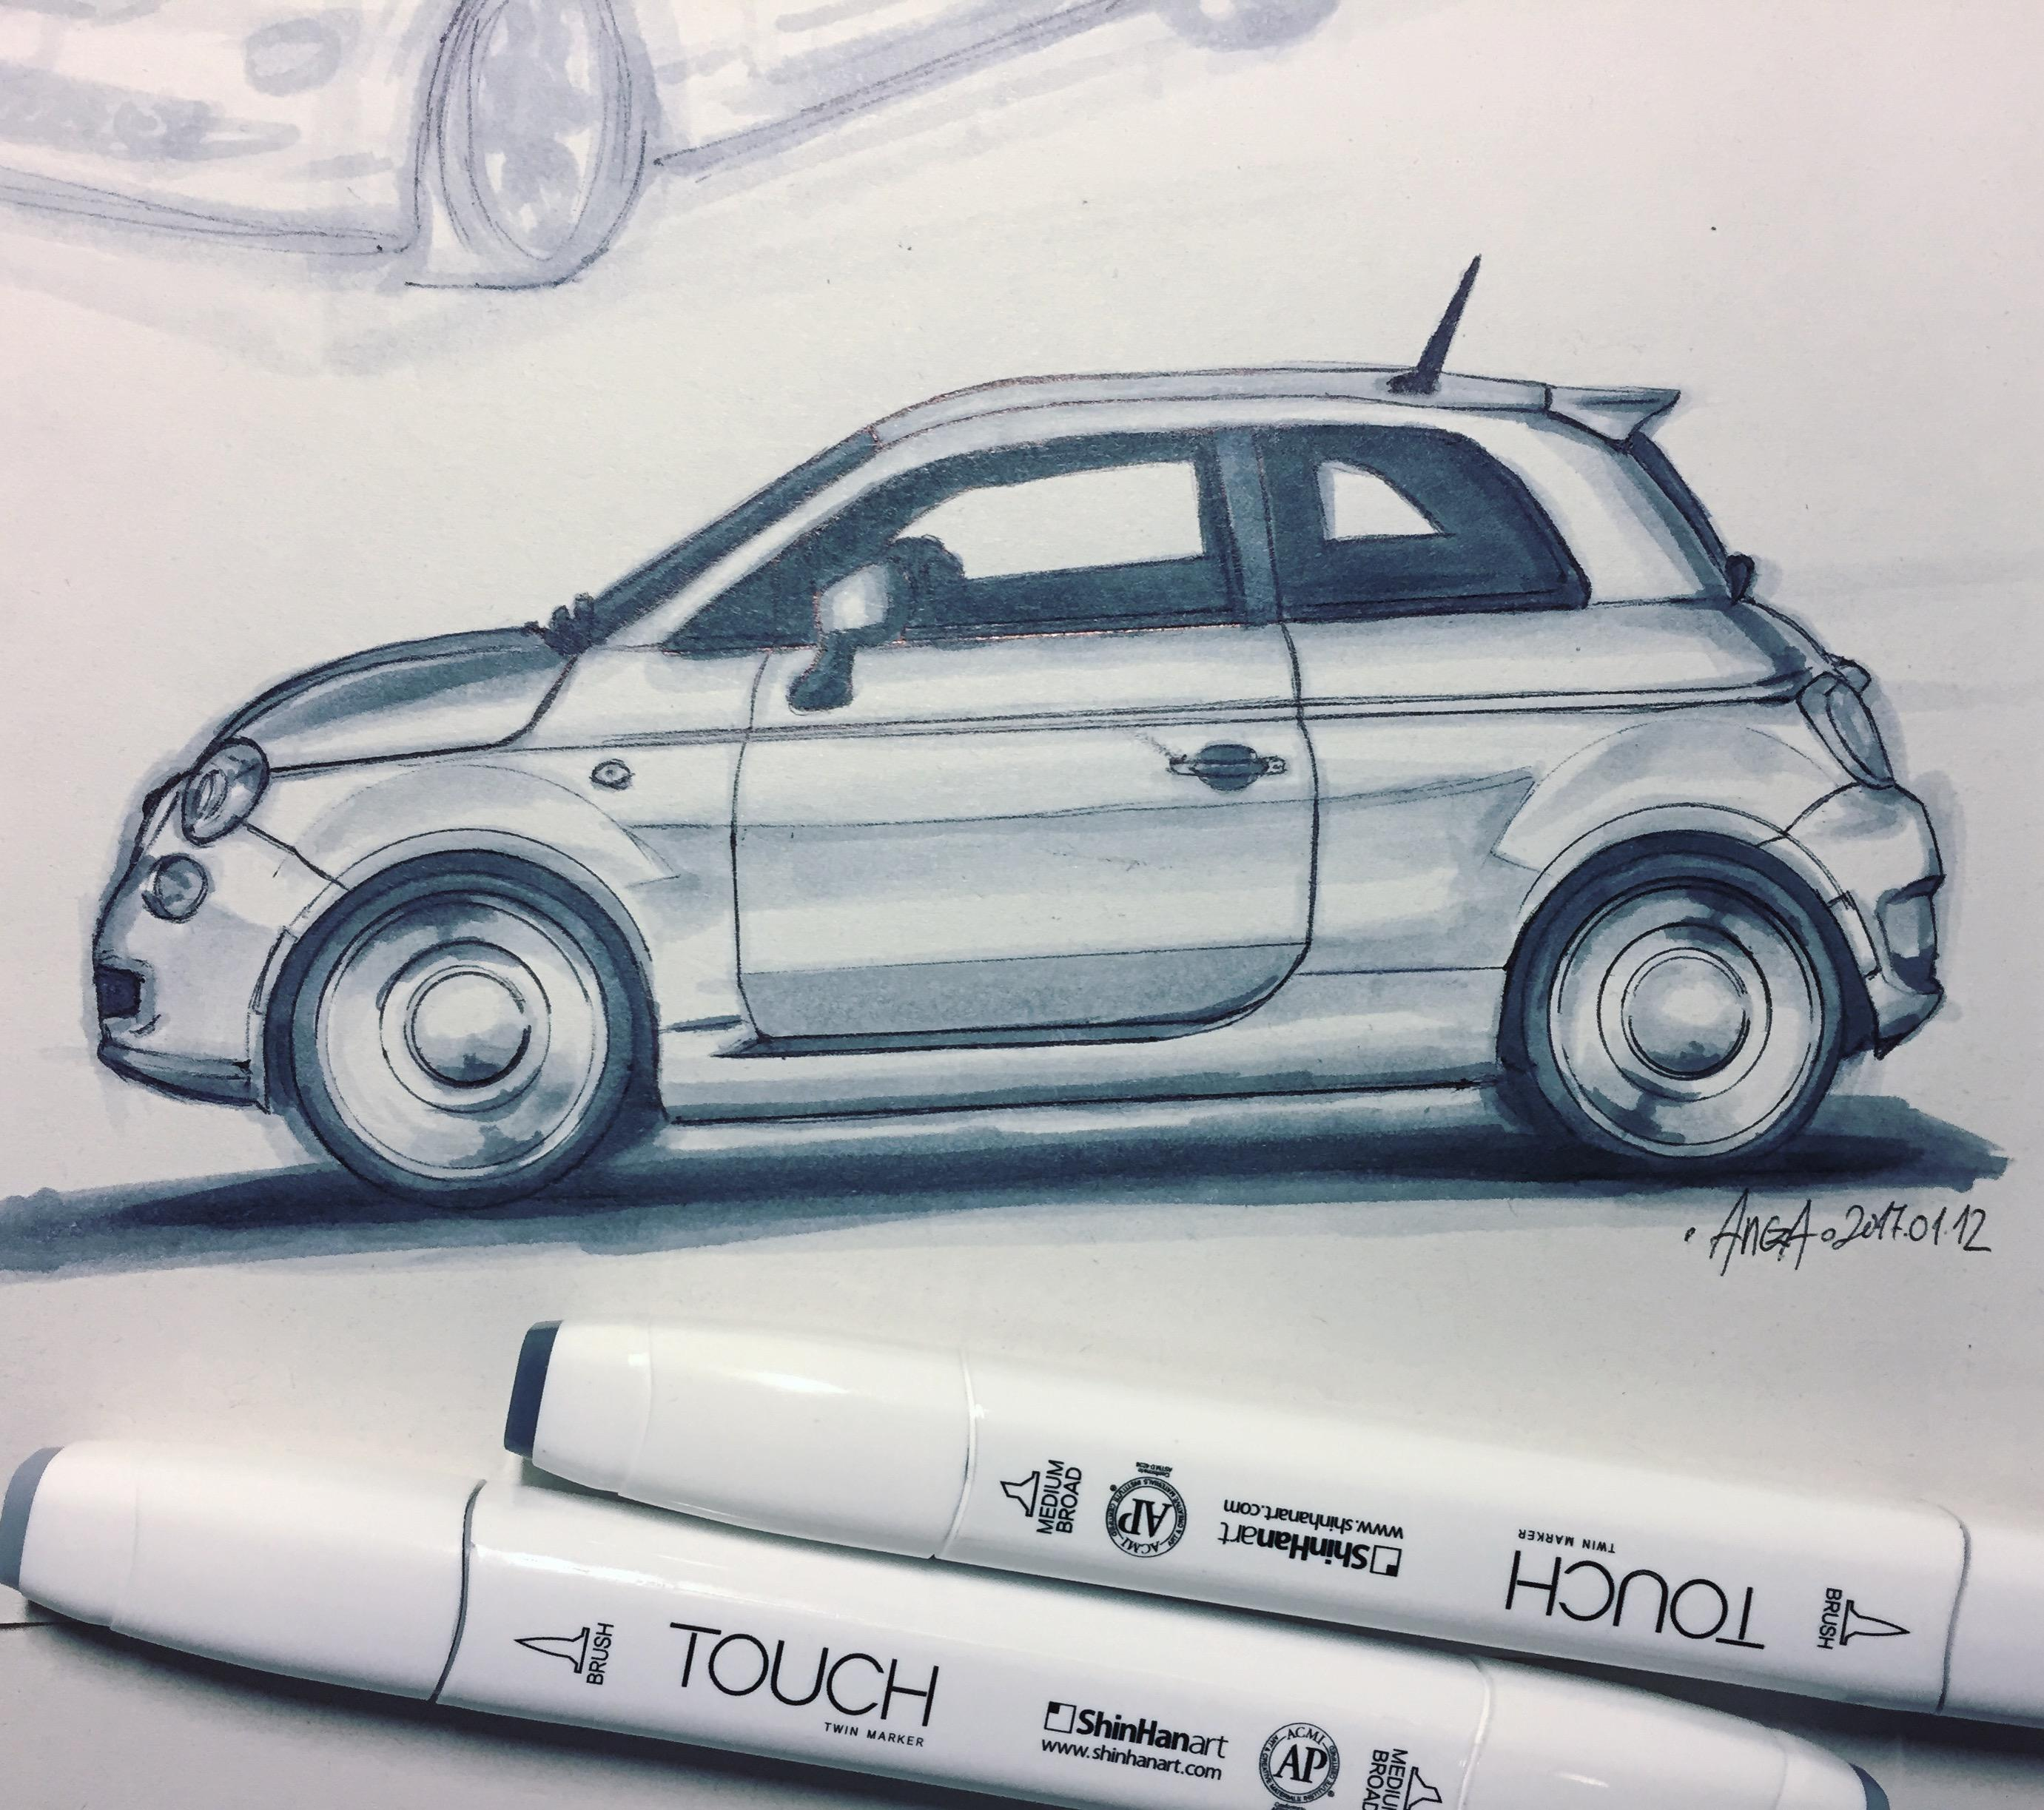 Drawn vehicle side view Few I the class sketches